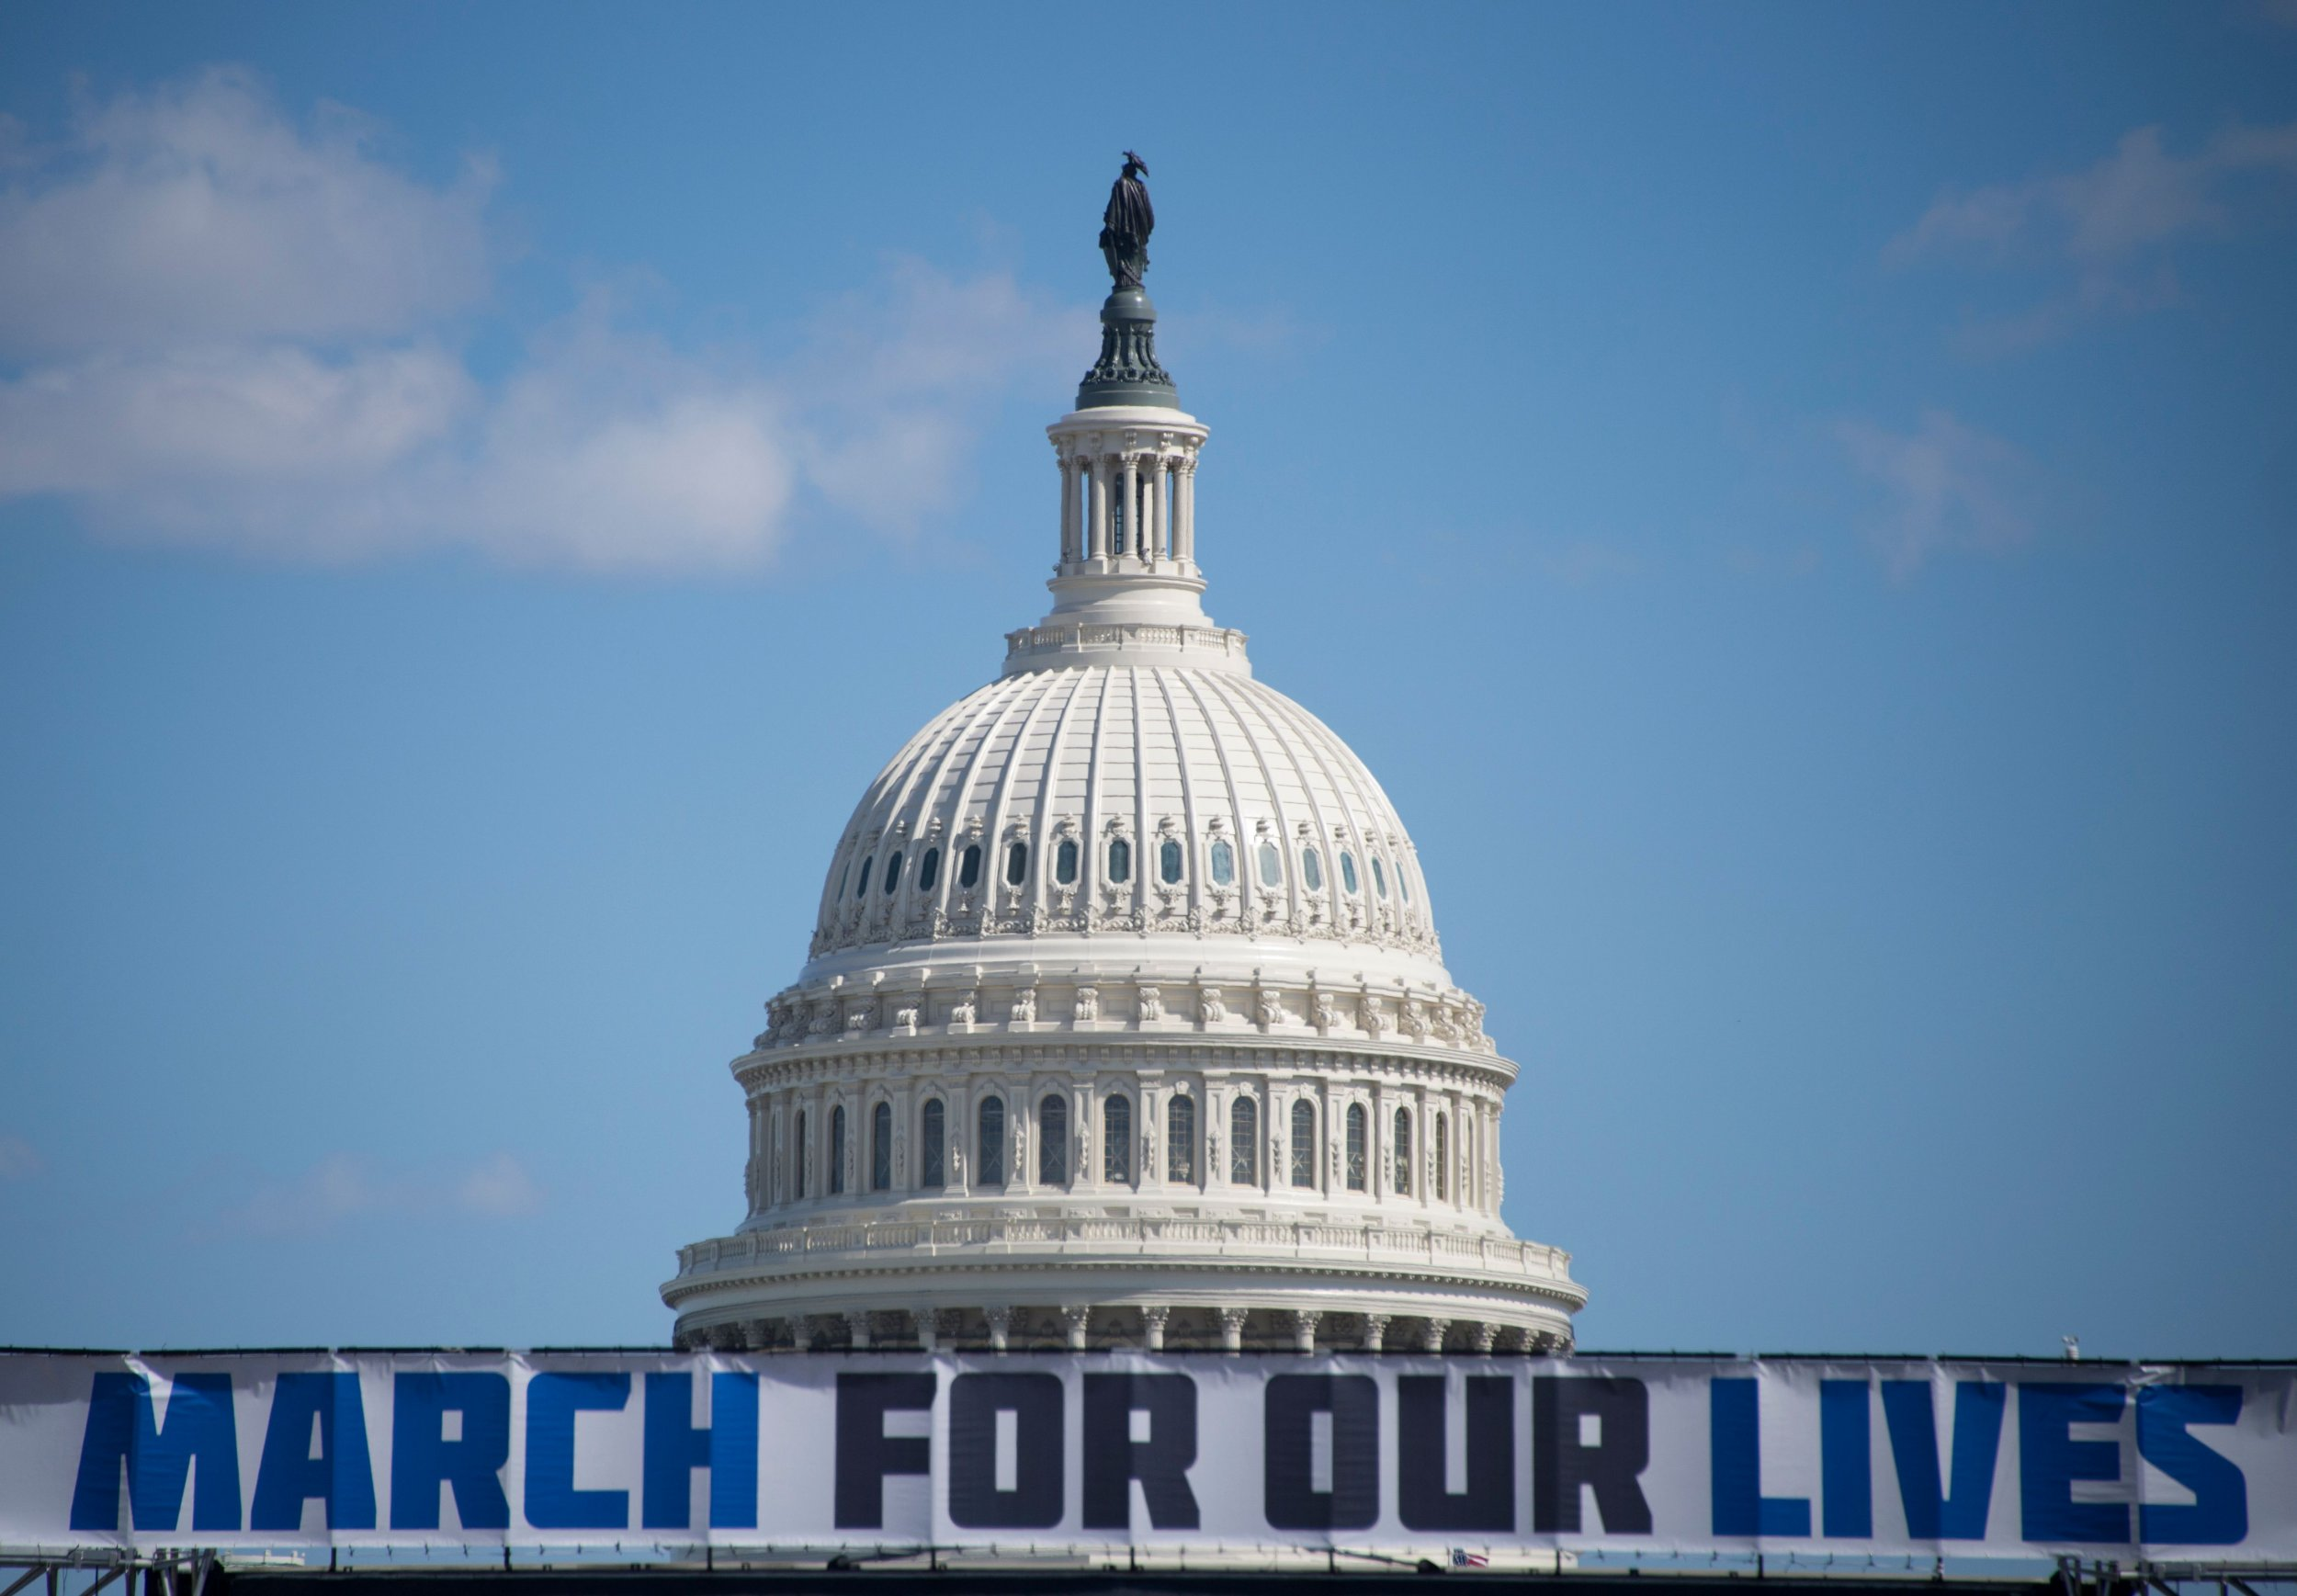 washington march for our lives